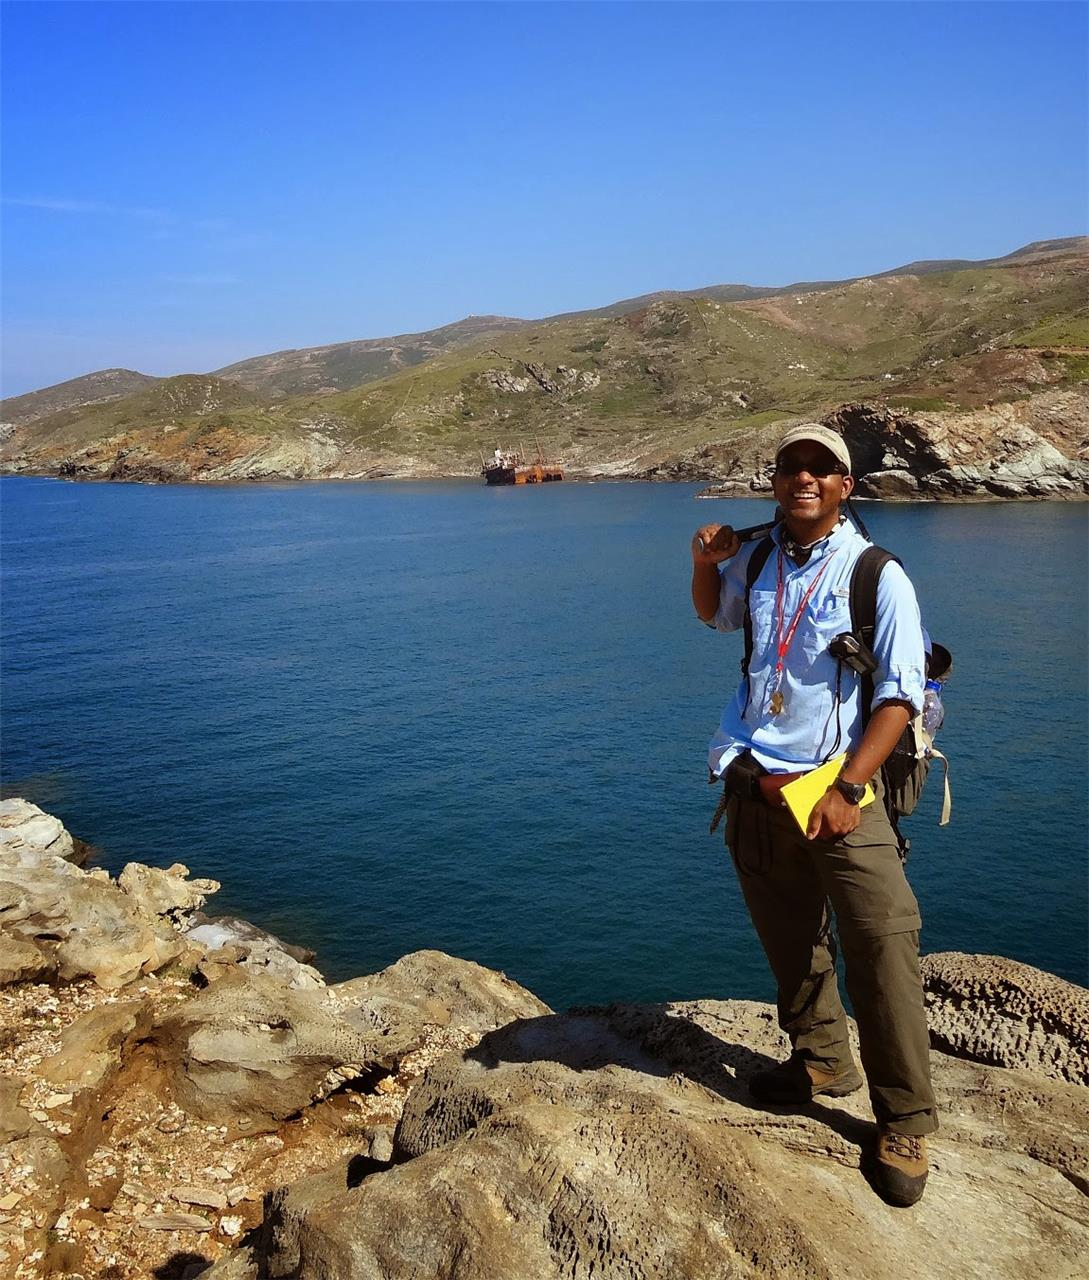 Tim Shin doing field research for his MS thesis at the Livada Detachment of retrogressed blueschists in the metamorphic core complex of Andros Island, Greece (2012)